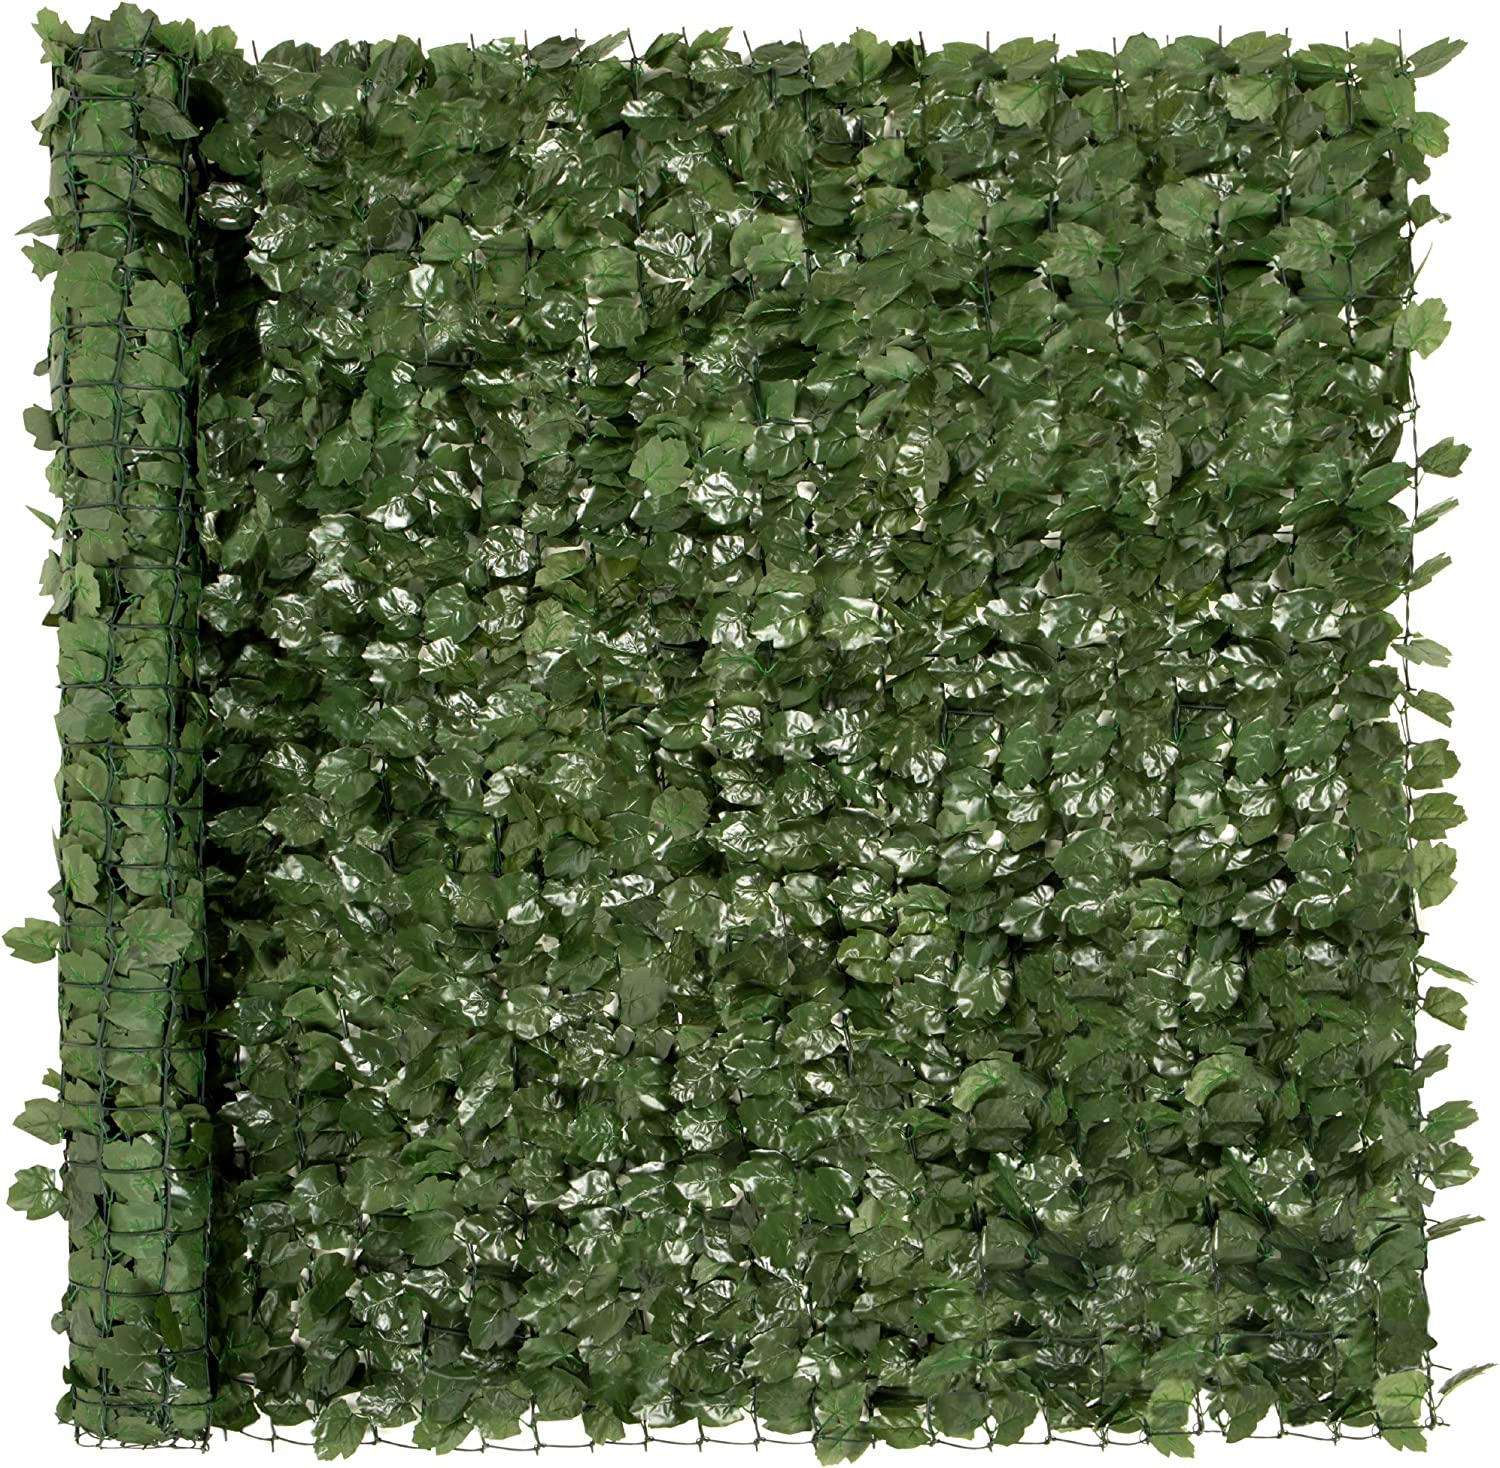 Best Choice Products Outdoor Garden 96x72-inch Artificial Faux Ivy Hedge Leaf and Vine Privacy Fence Wall Screen - Green